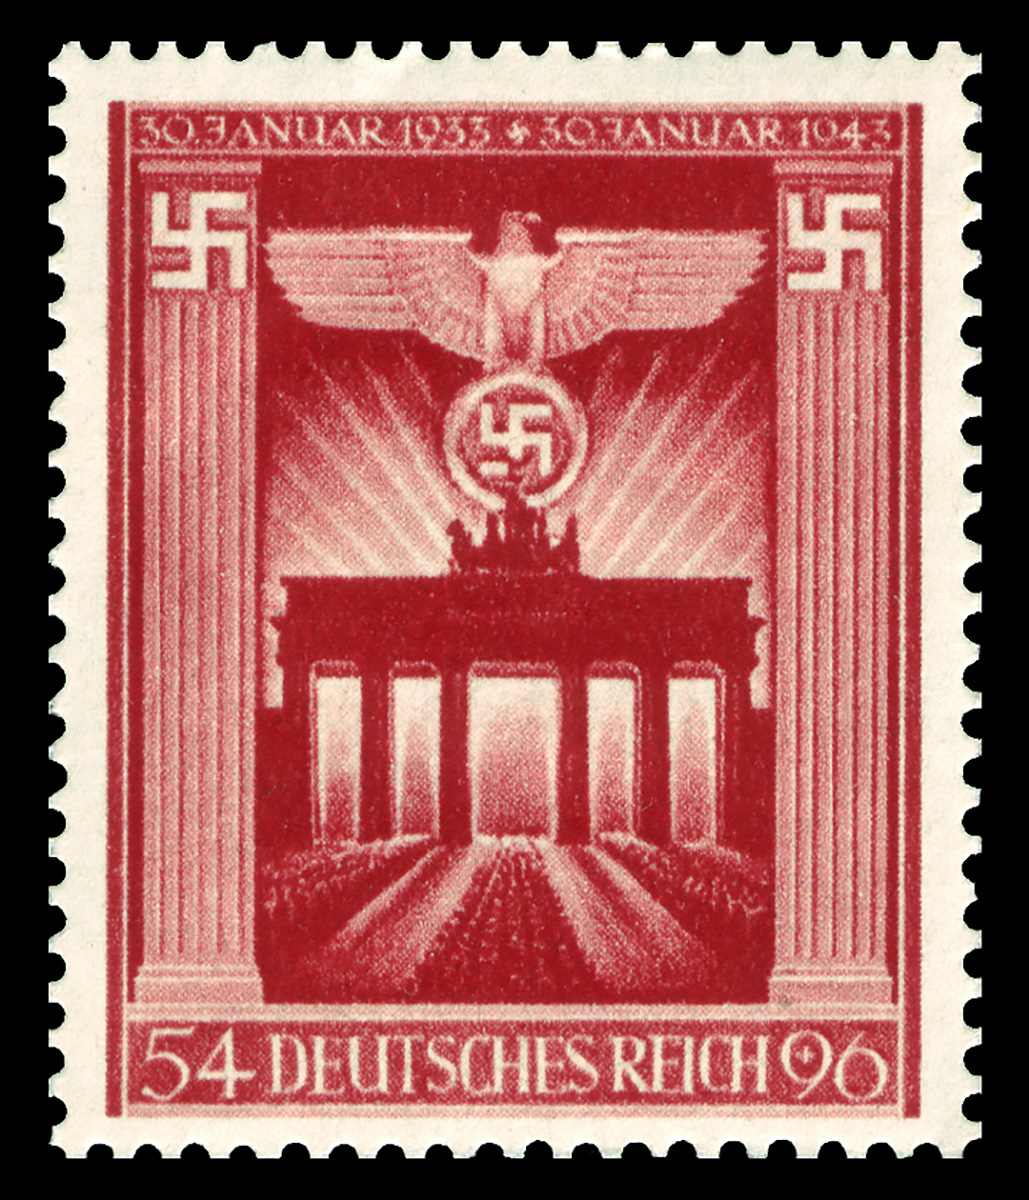 A pre-1944 semipostal Brandenburg commemorative, face value 54pf, with a surcharge of 96pf